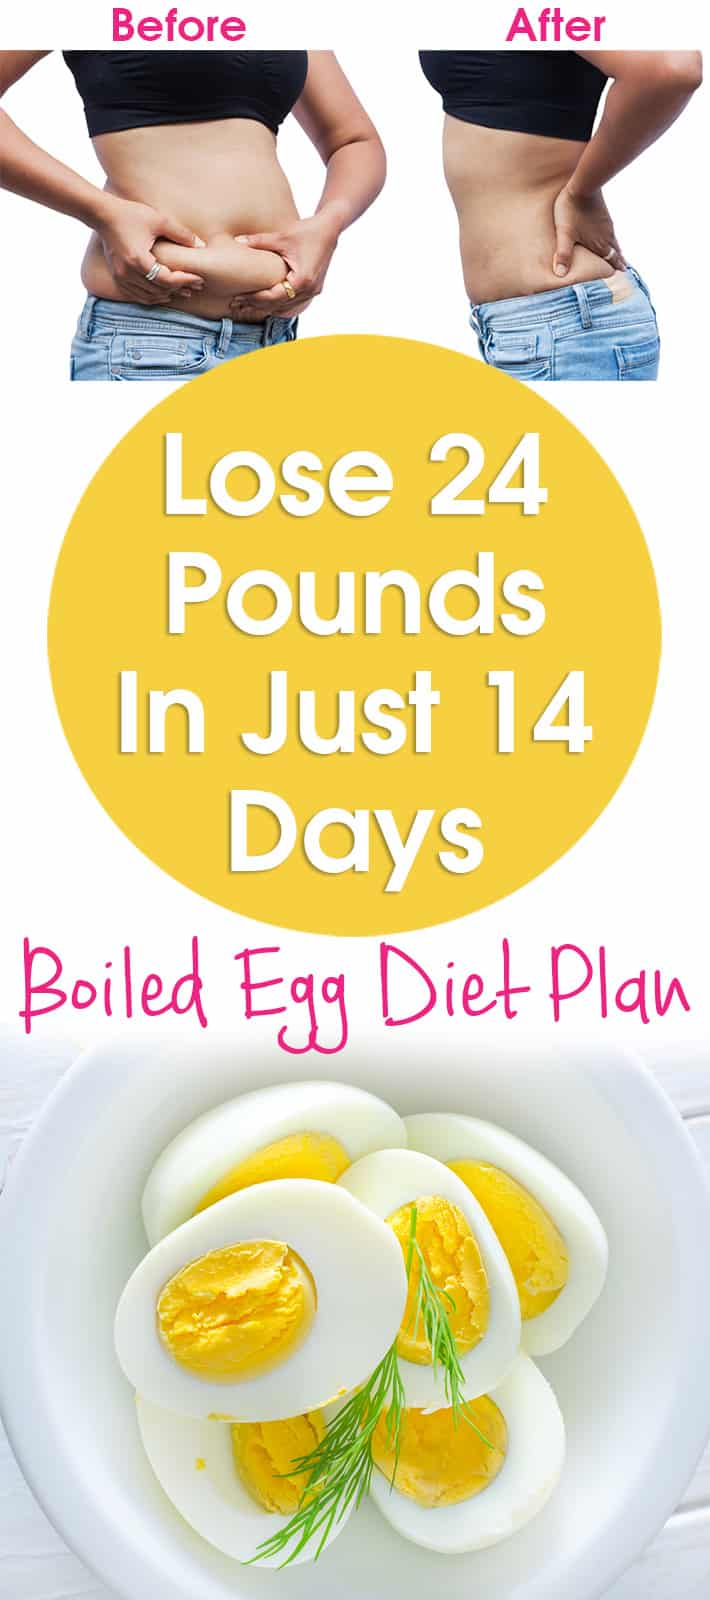 Lose 24 Pounds In Just 14 Days – Boiled Egg Diet 2 Weeks Plan